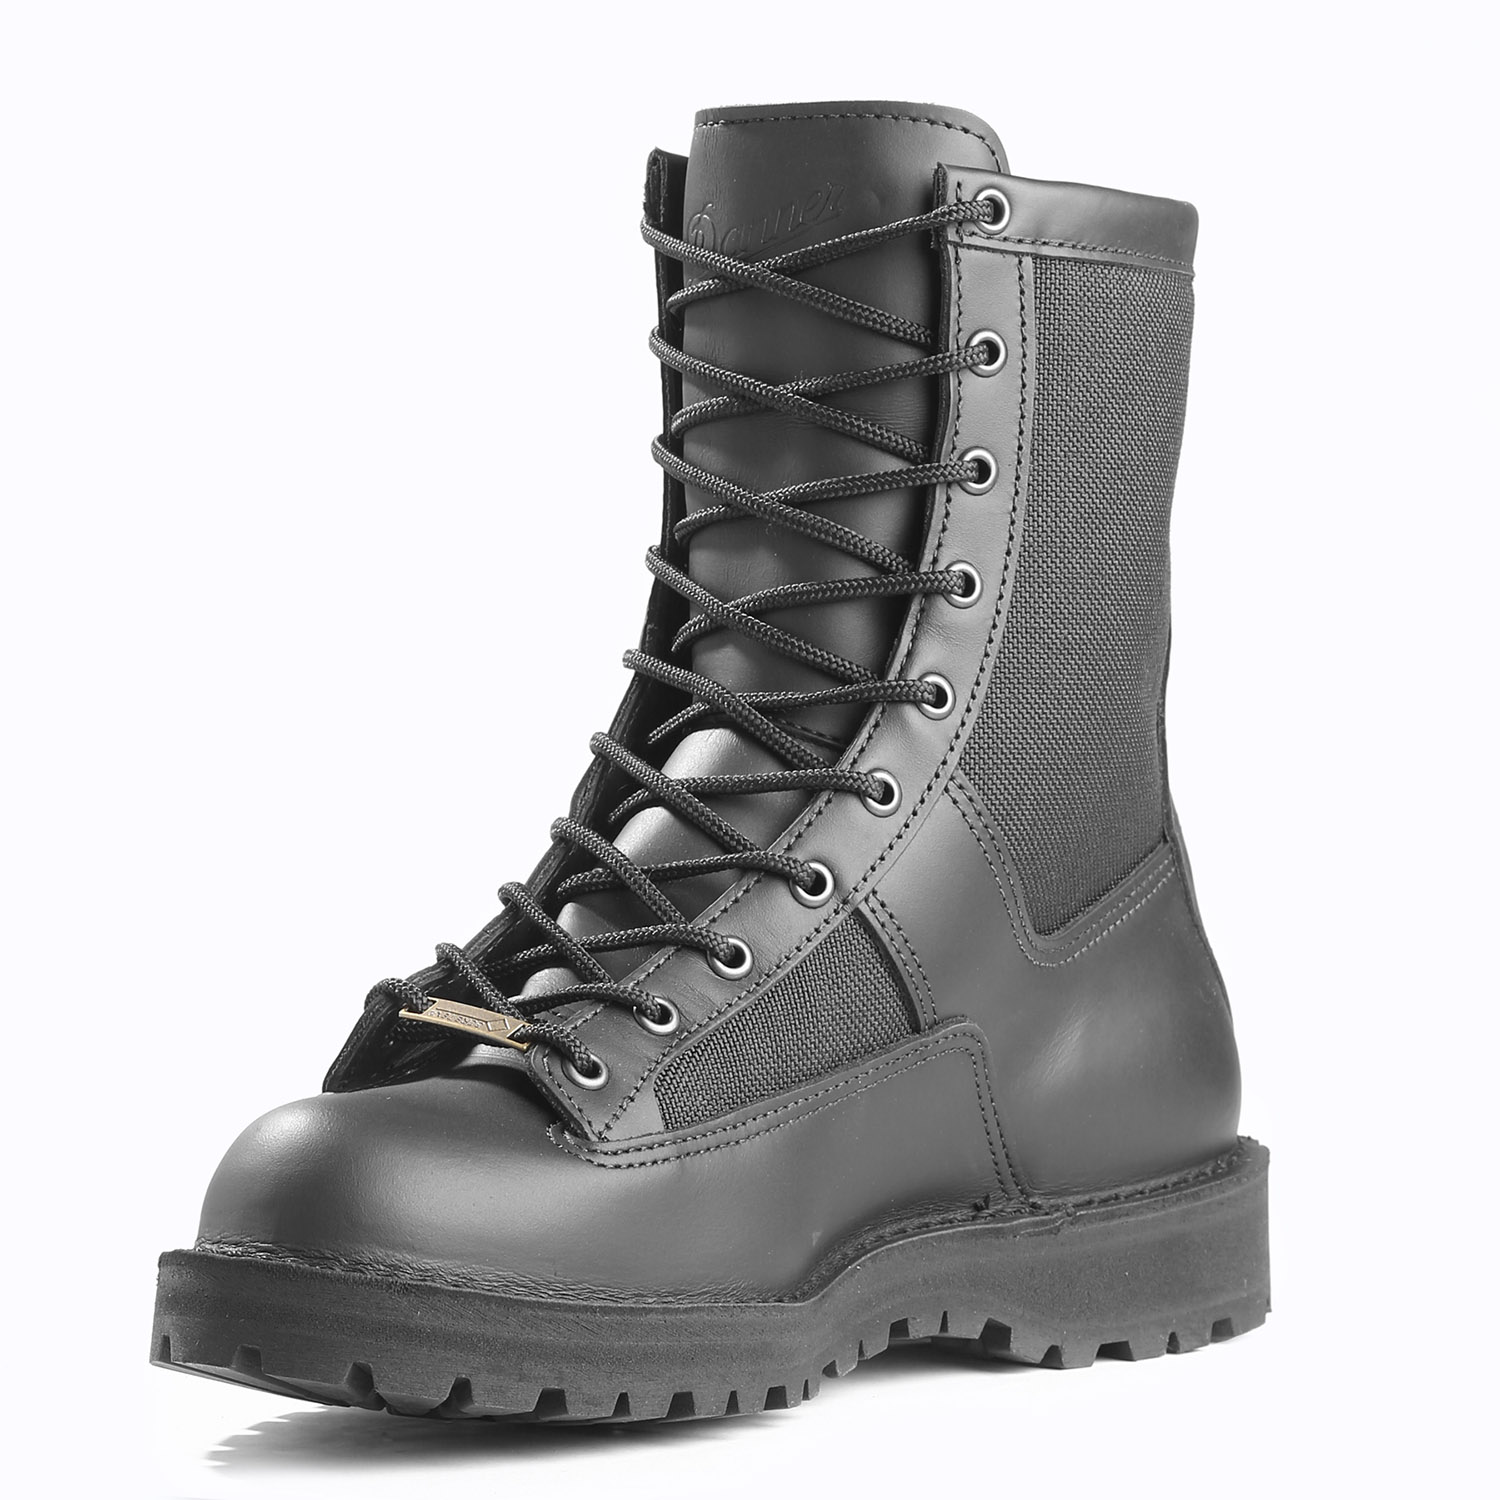 Danner Acadia 8 Quot Waterproof Duty Boot